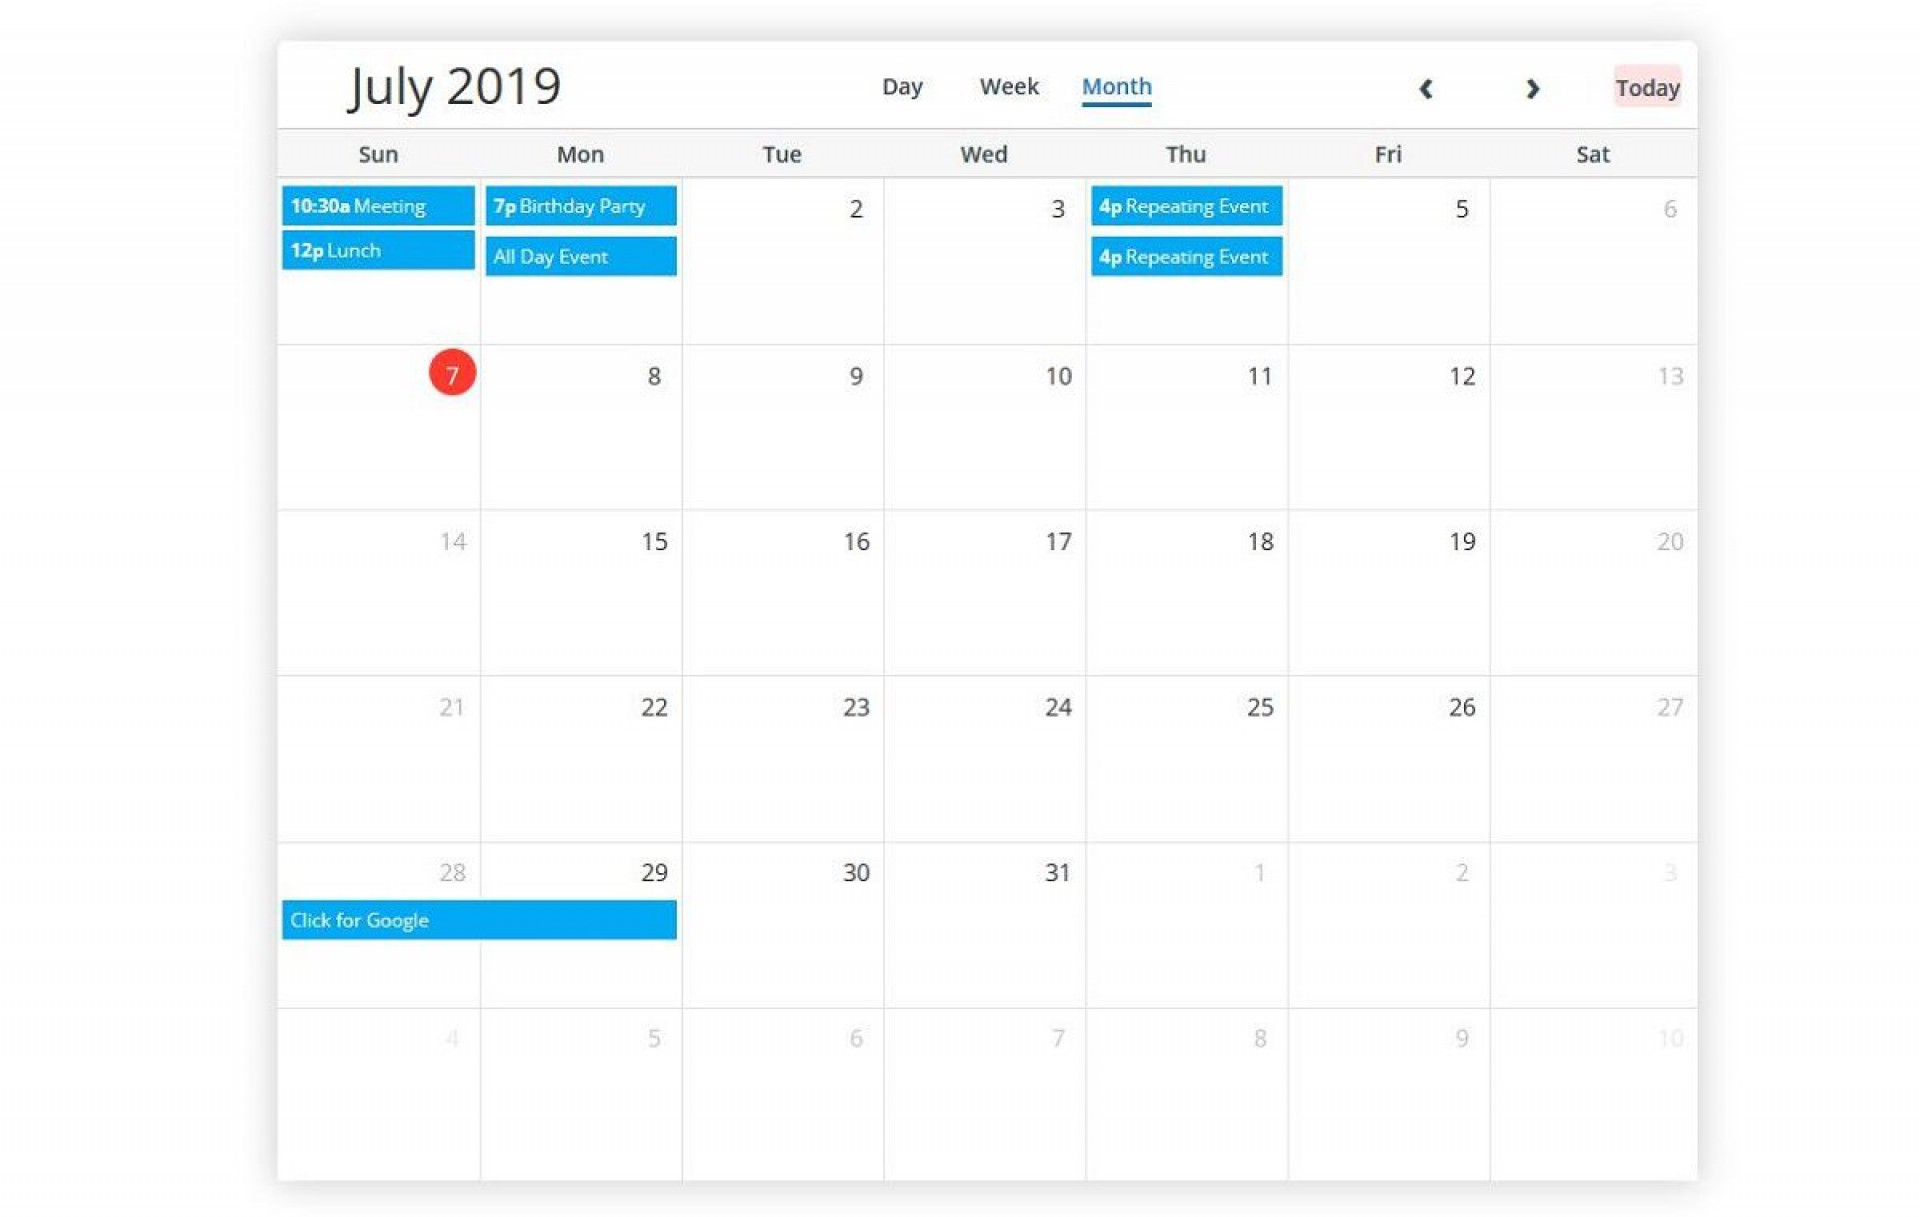 001 Incredible Free Event Calendar Template Picture  Html For Website1920